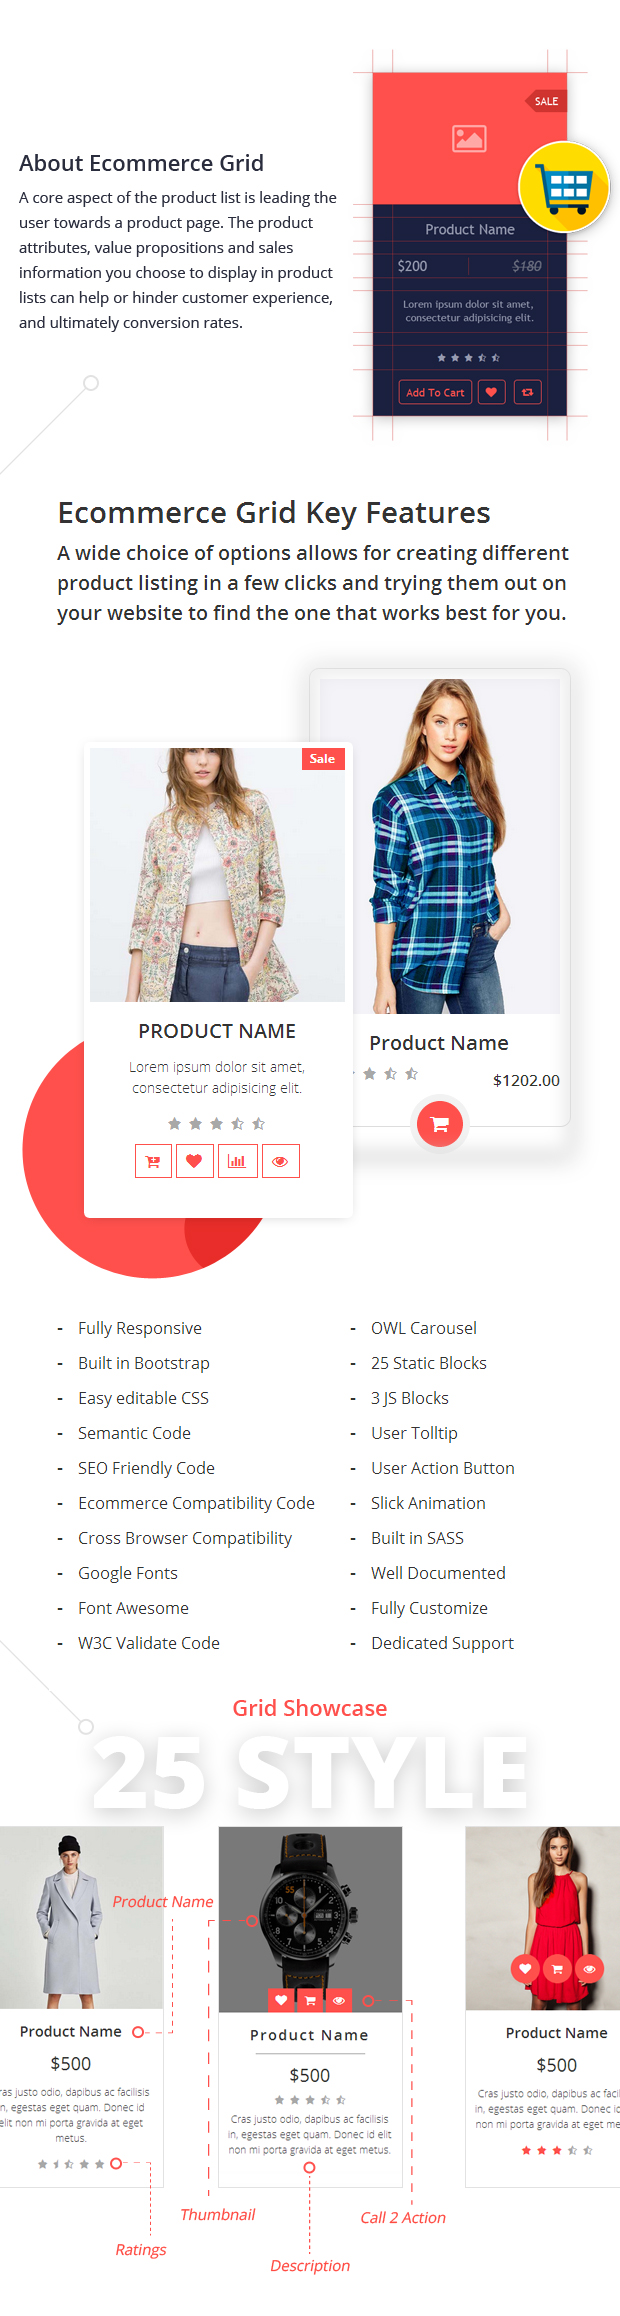 Features Ecommerce Grid is a Multipurpose Product Showcase HTML Widget